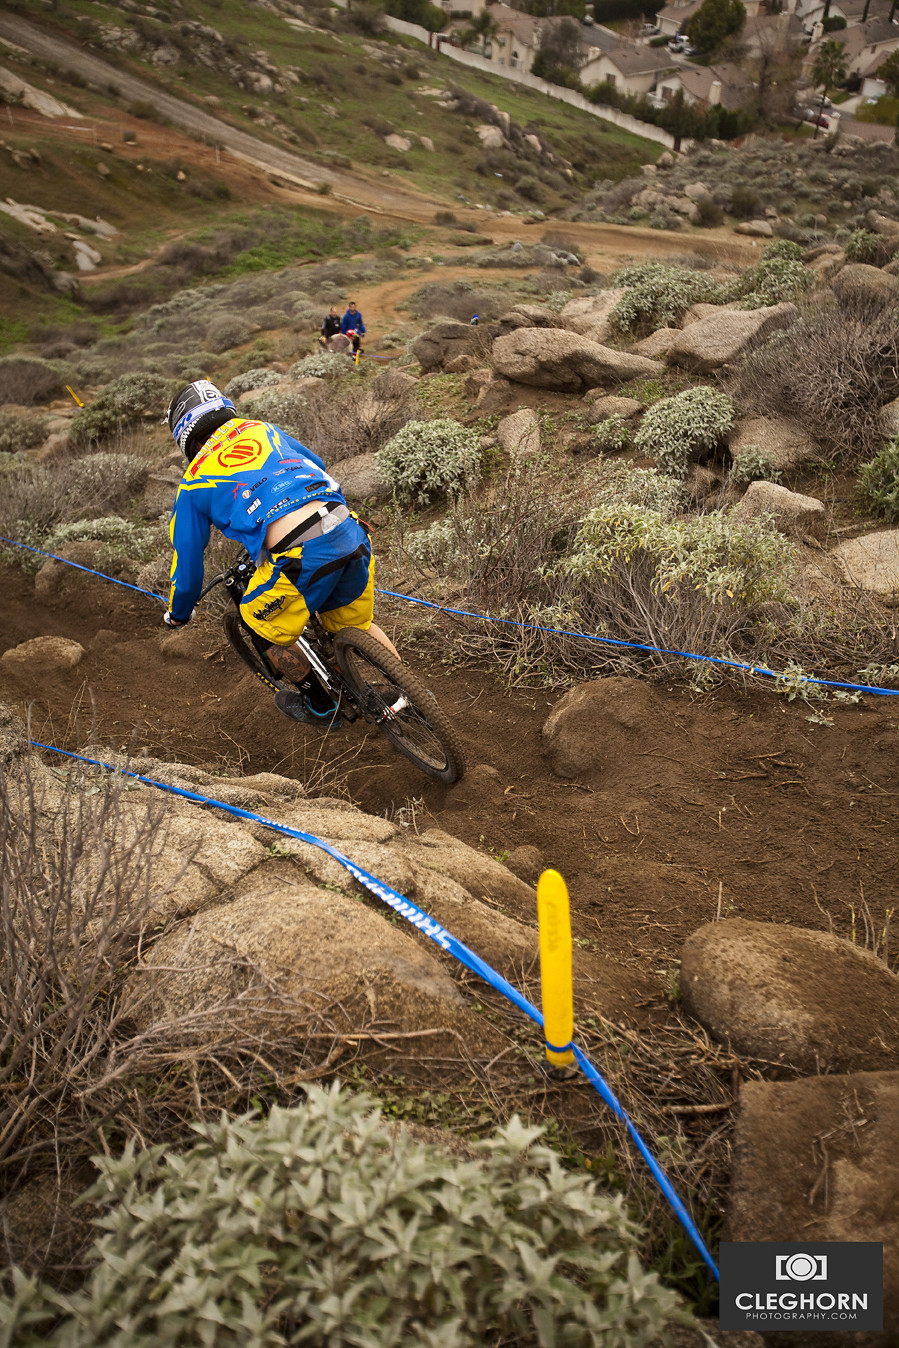 Kevin Aiello on the move! - Cleghorn Photography - Mountain Biking Pictures - Vital MTB